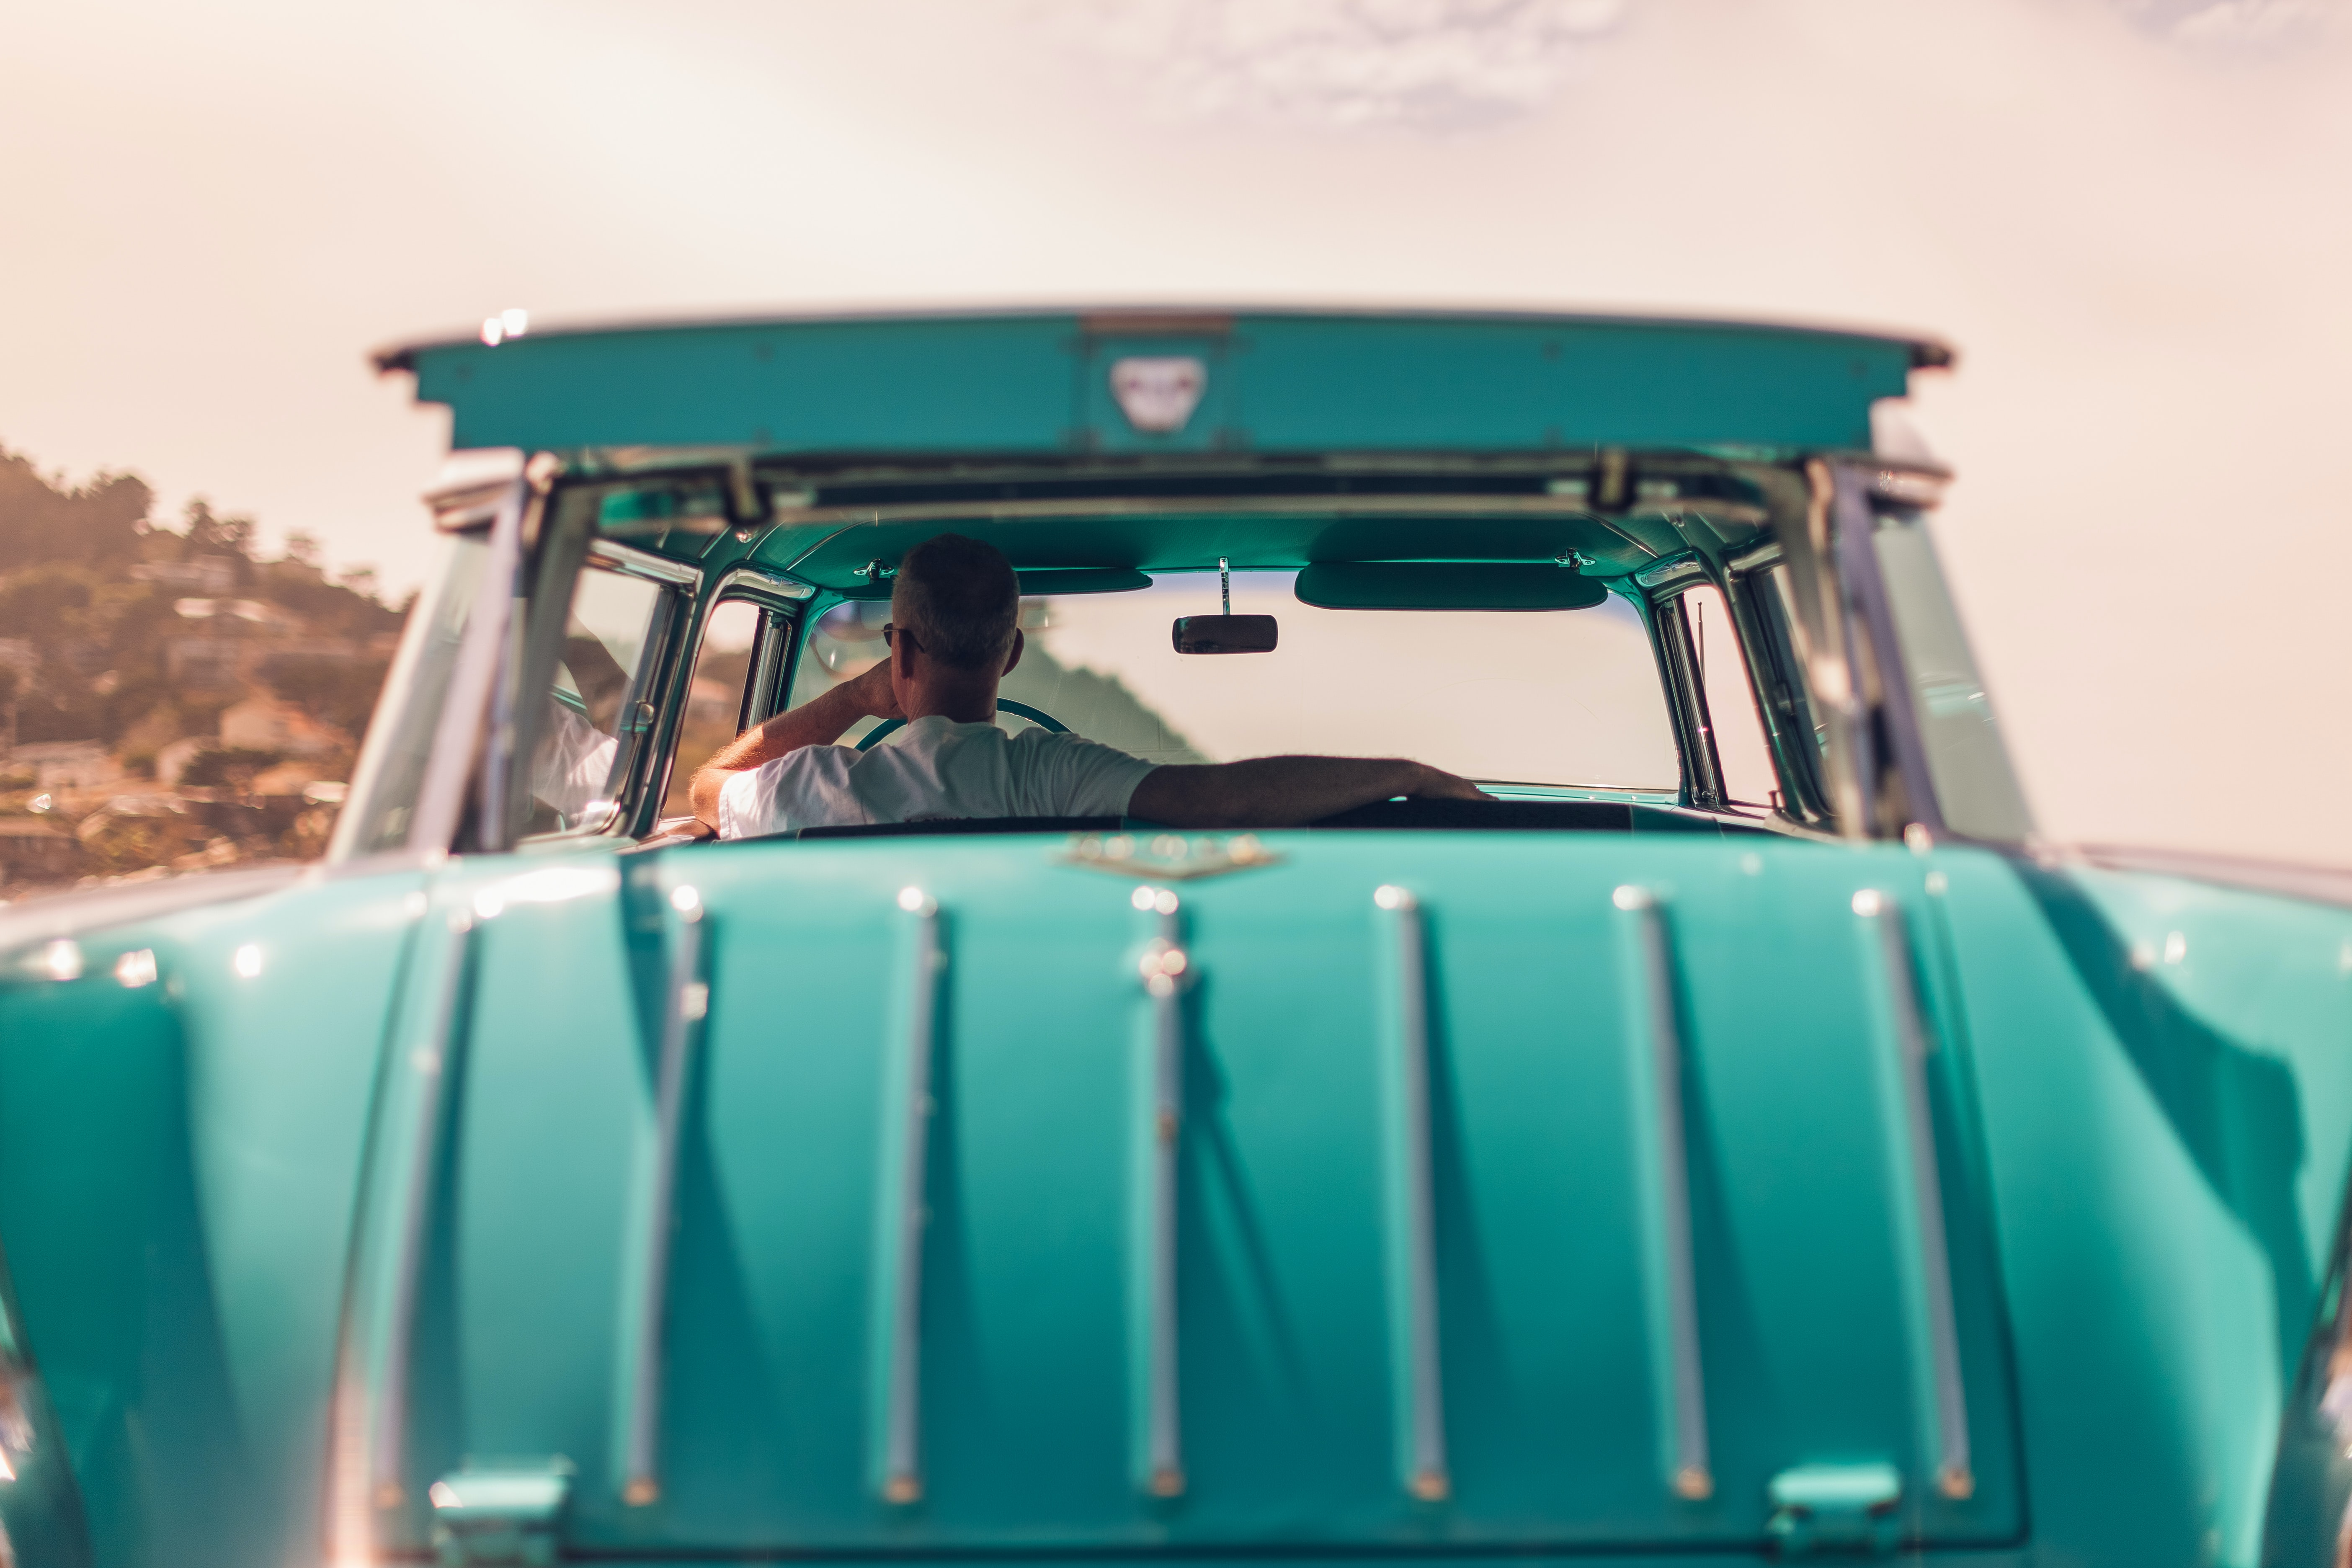 Man sitting in stylish teal classic car looking out window during daytime